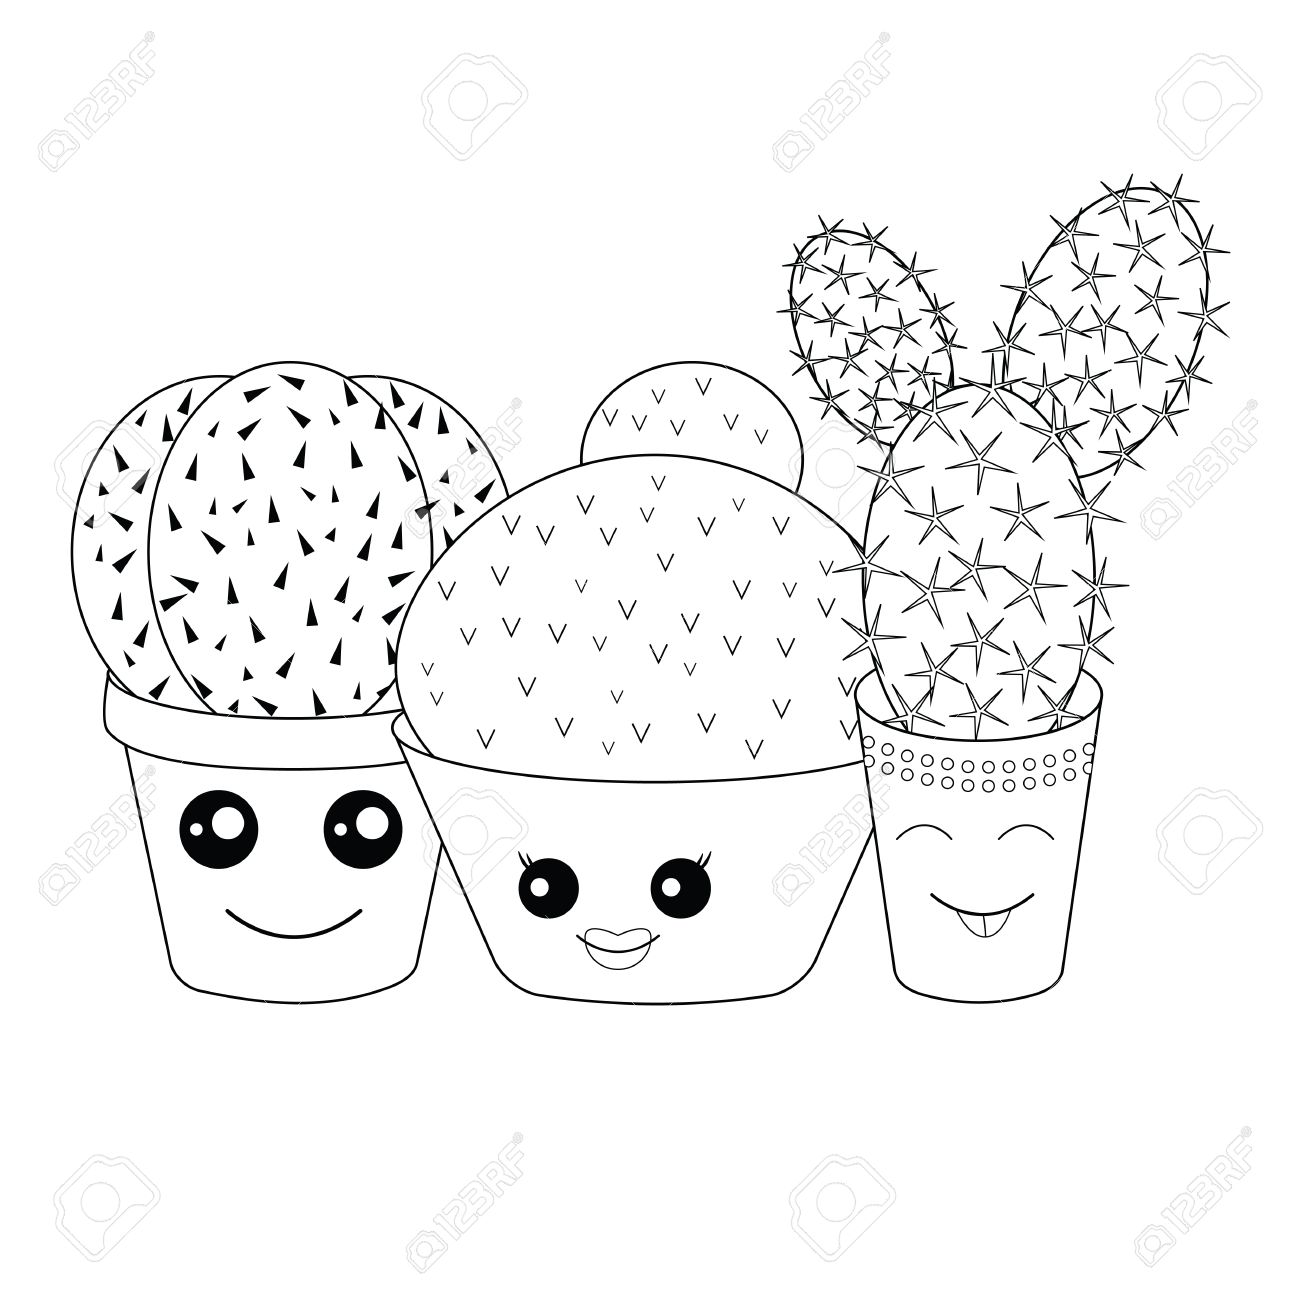 coloring with cacticoloring pagehilarious family of cacti on - Prickly Pear Cactus Coloring Page